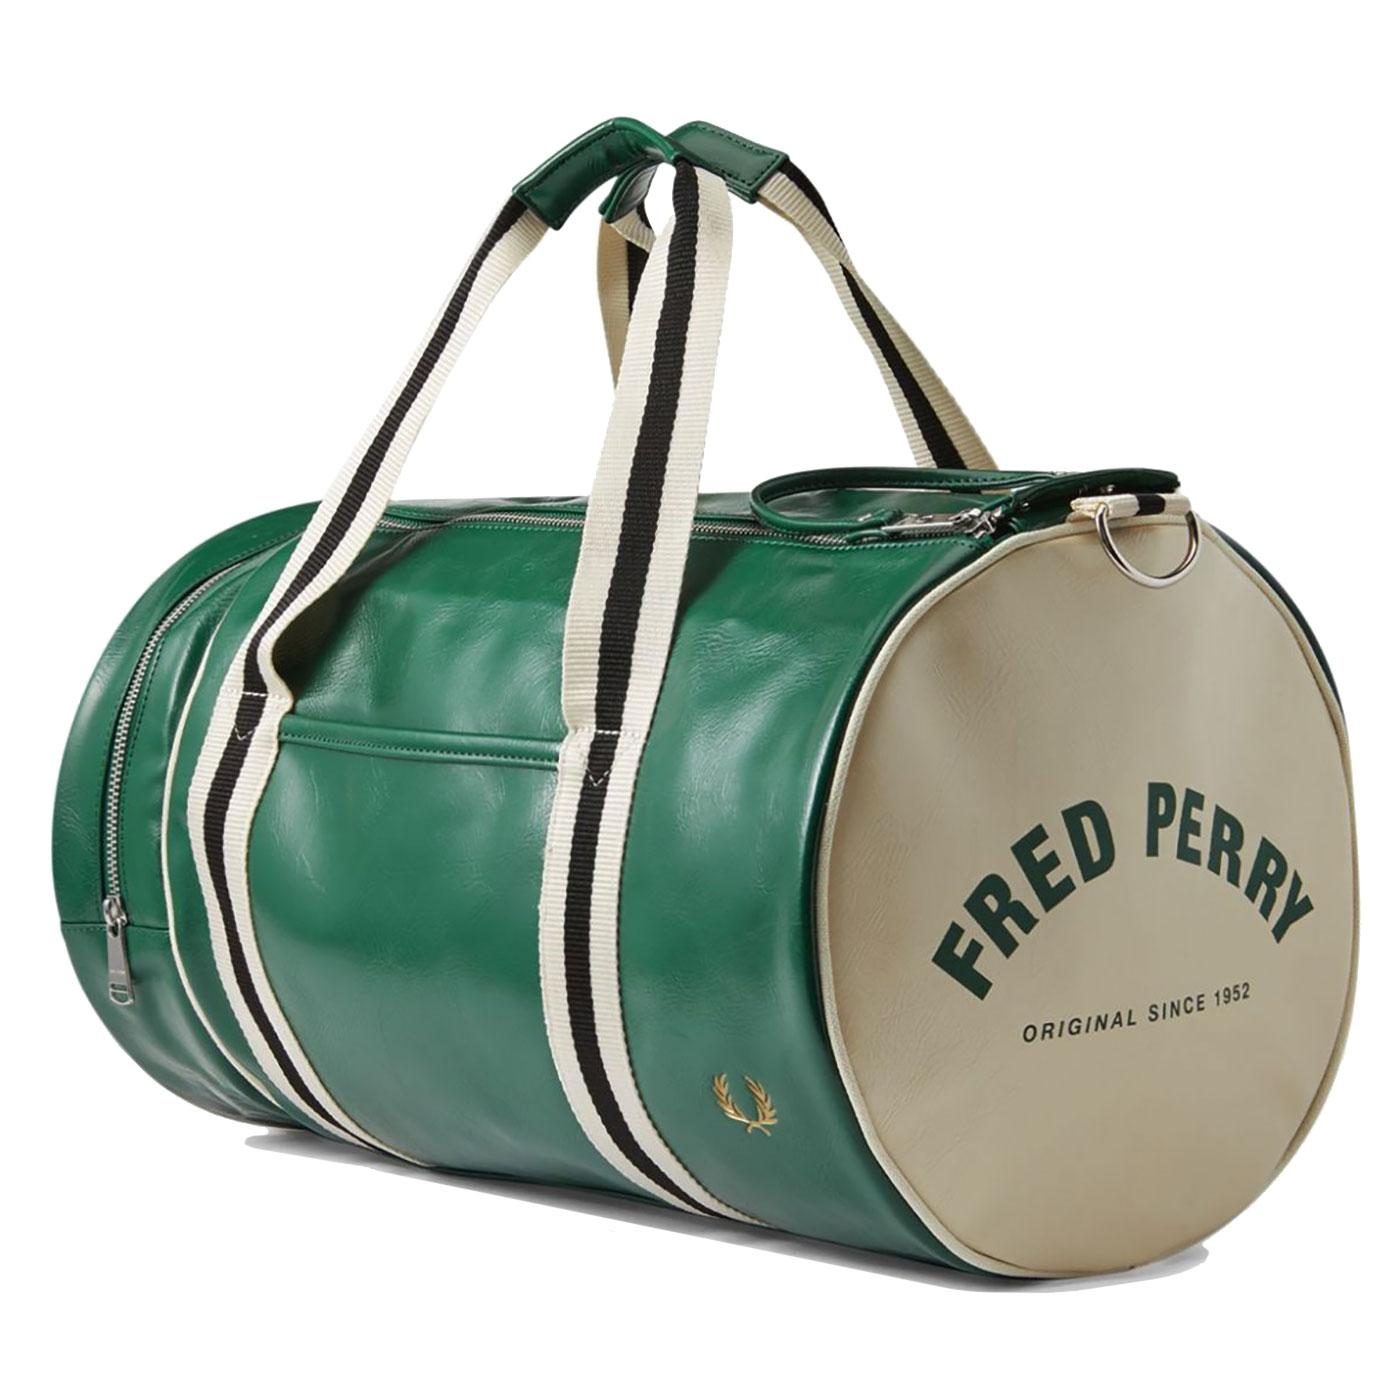 FRED PERRY Retro Classic Barrel Weekend Bag IVY